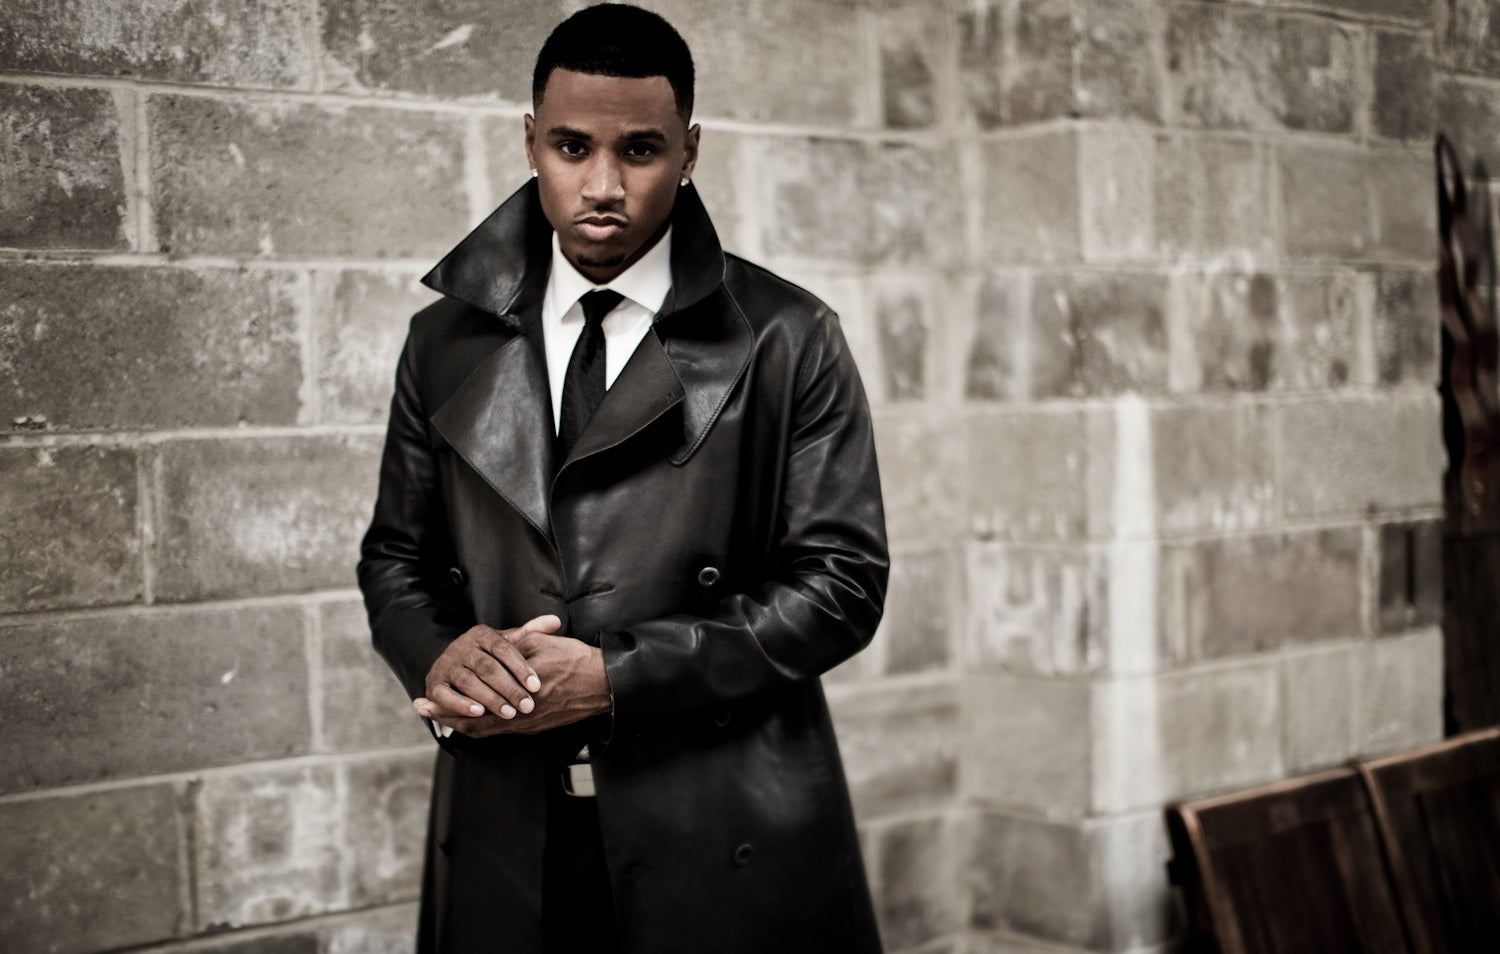 Exclusive: Trey Songz's New Video, 'Sex Ain't Better Than Love'